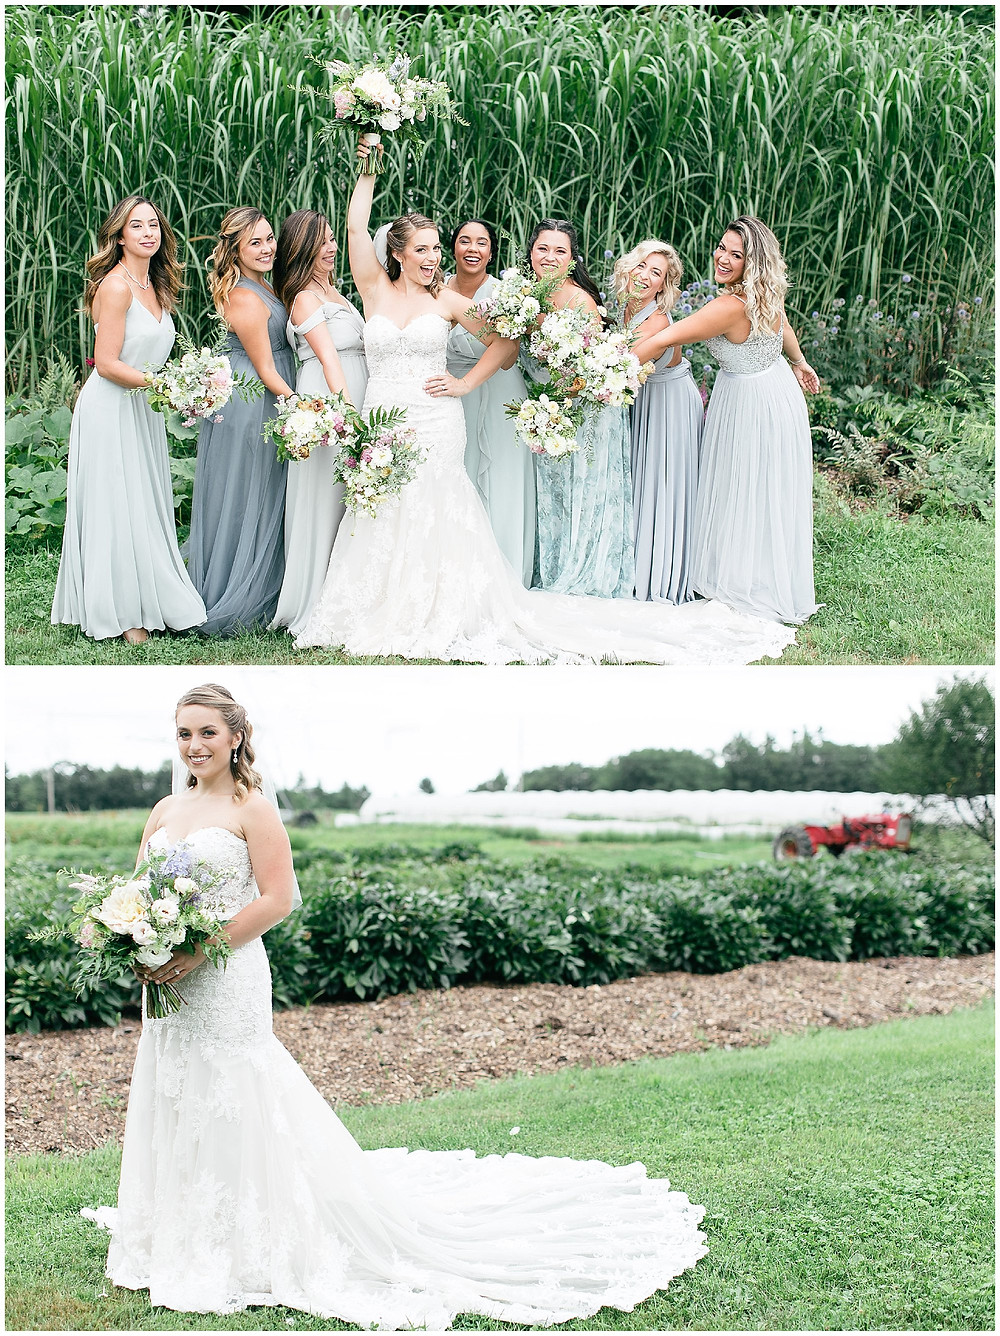 A group picture of the bride and her bridesmaids cheering her own as the raise their bouquets.